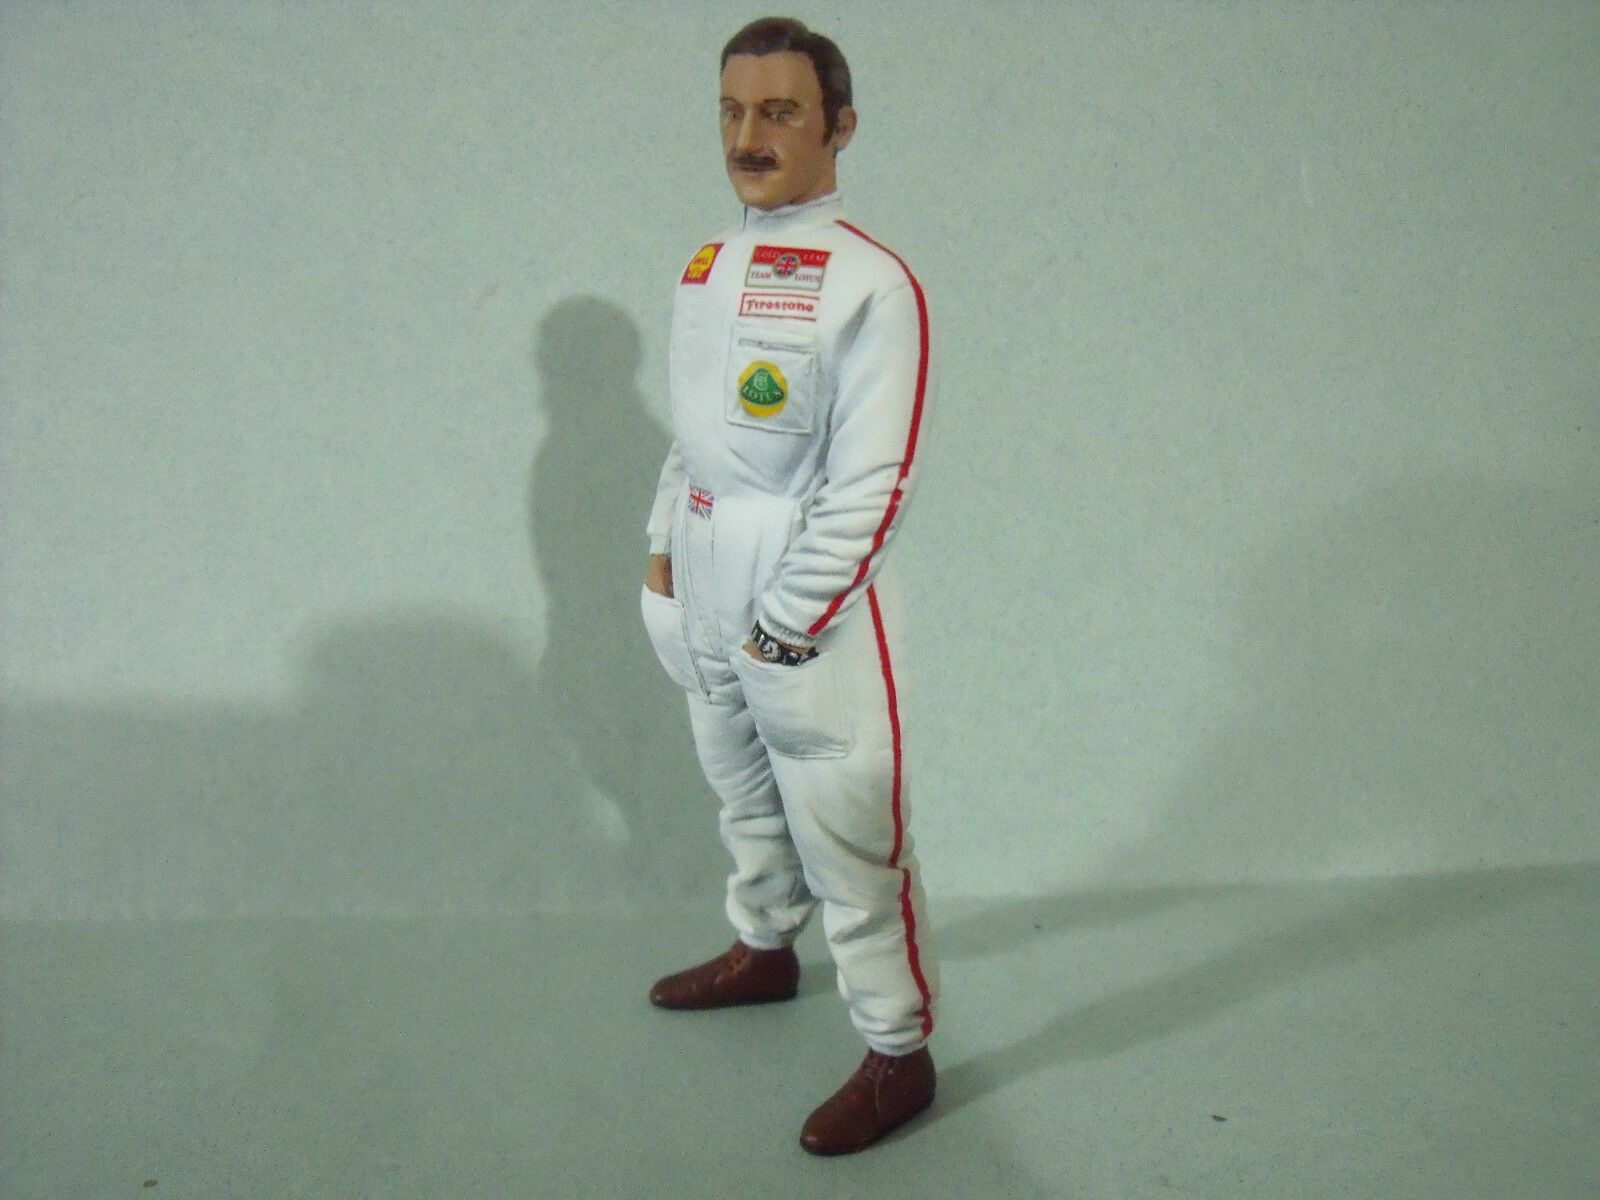 FIGURINE  1 18  GRAHAM  HILL  VROOM  A  PEINDRE  UNPAINTED  FOR  LOTUS  SPARK